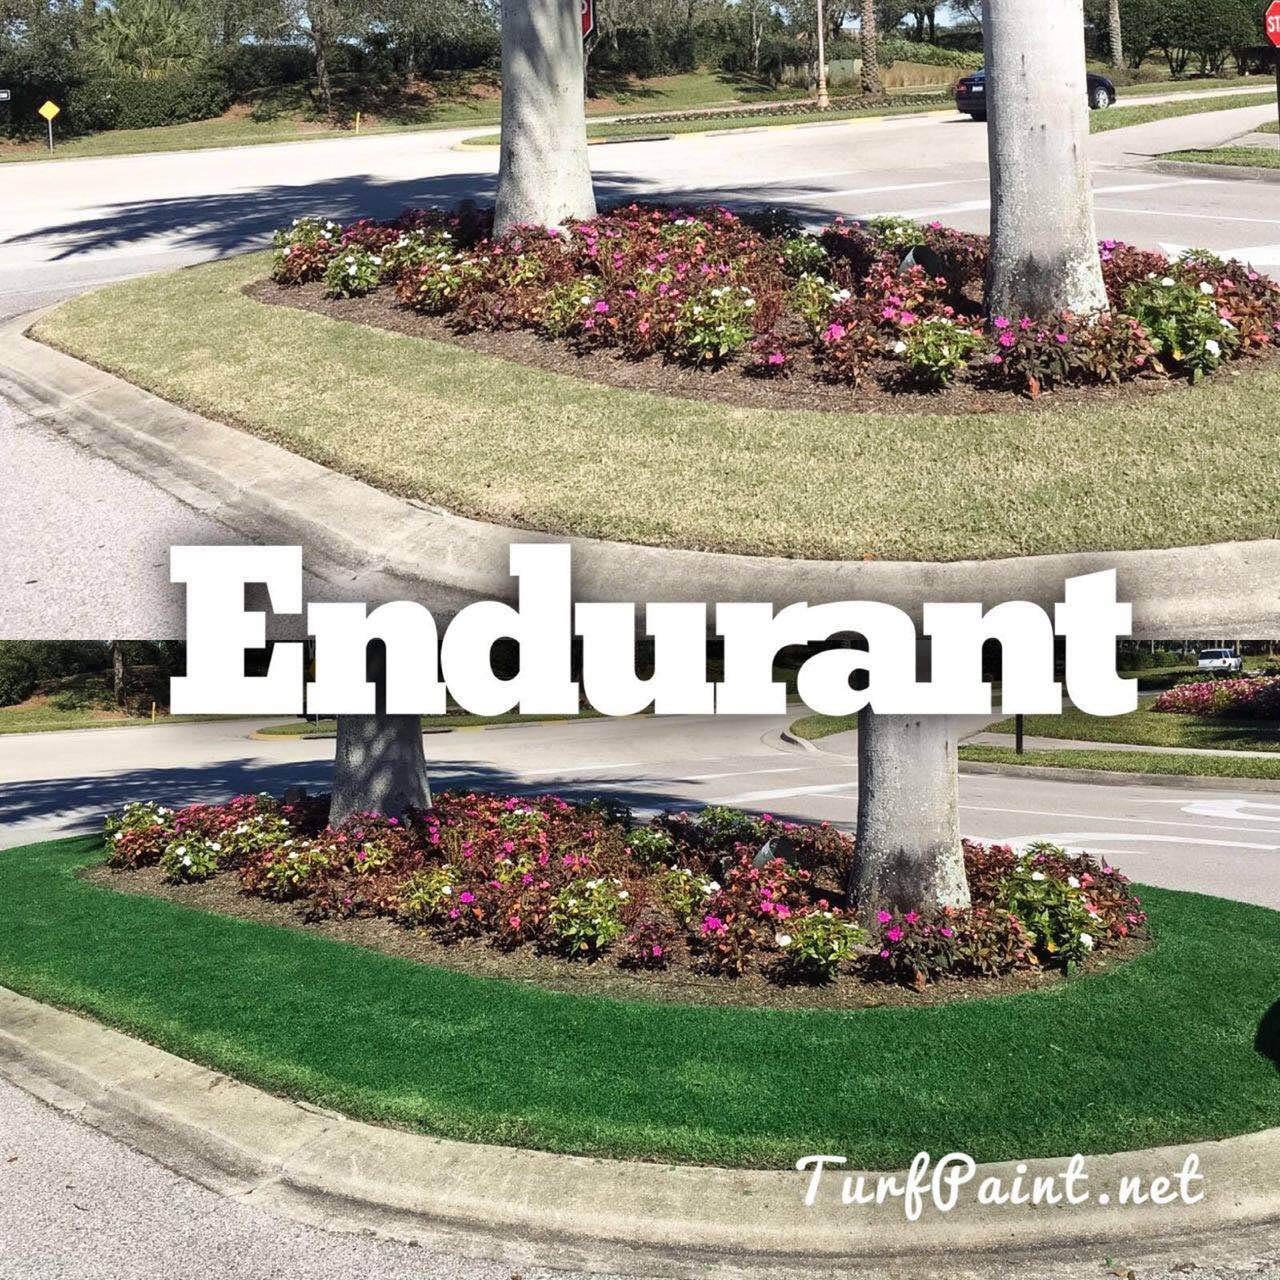 Concentrated Turf and Grass Colorant - 1 Gallon Jug Revitalizes Approximately 10,000 Sq. Ft of Dormant, Drought-Stricken or Patchy Lawn (Premium) by   Endurant (Image #5)